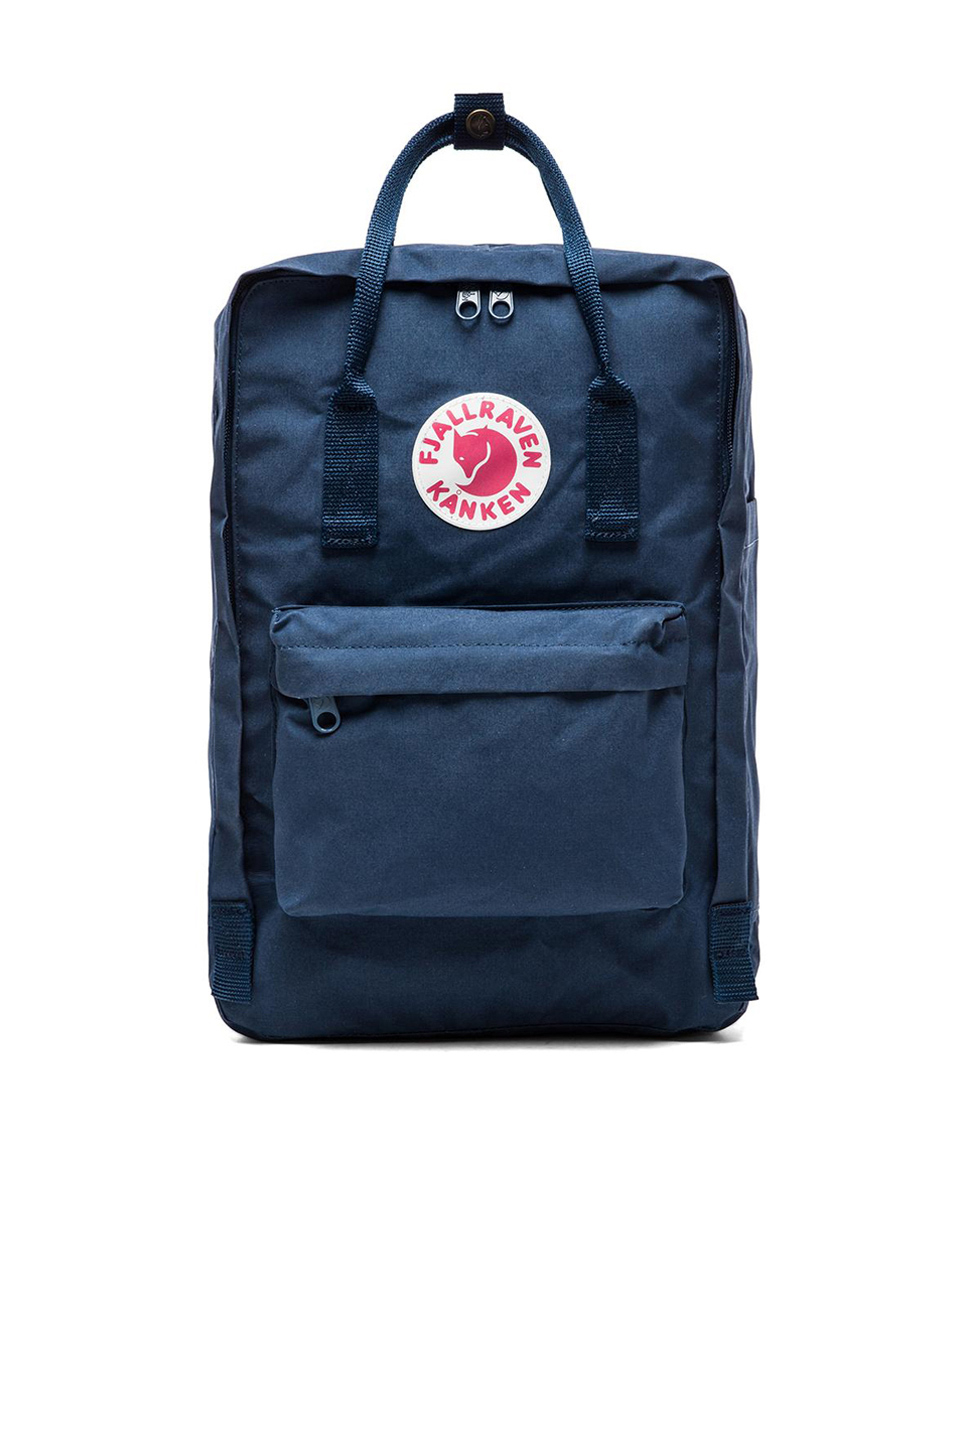 Poly Bags With Handlespolythene From Polybags For The Best Fjallraven Kanken Laptop 15ampquot Black 15 Quot Pack In Blue Lyst